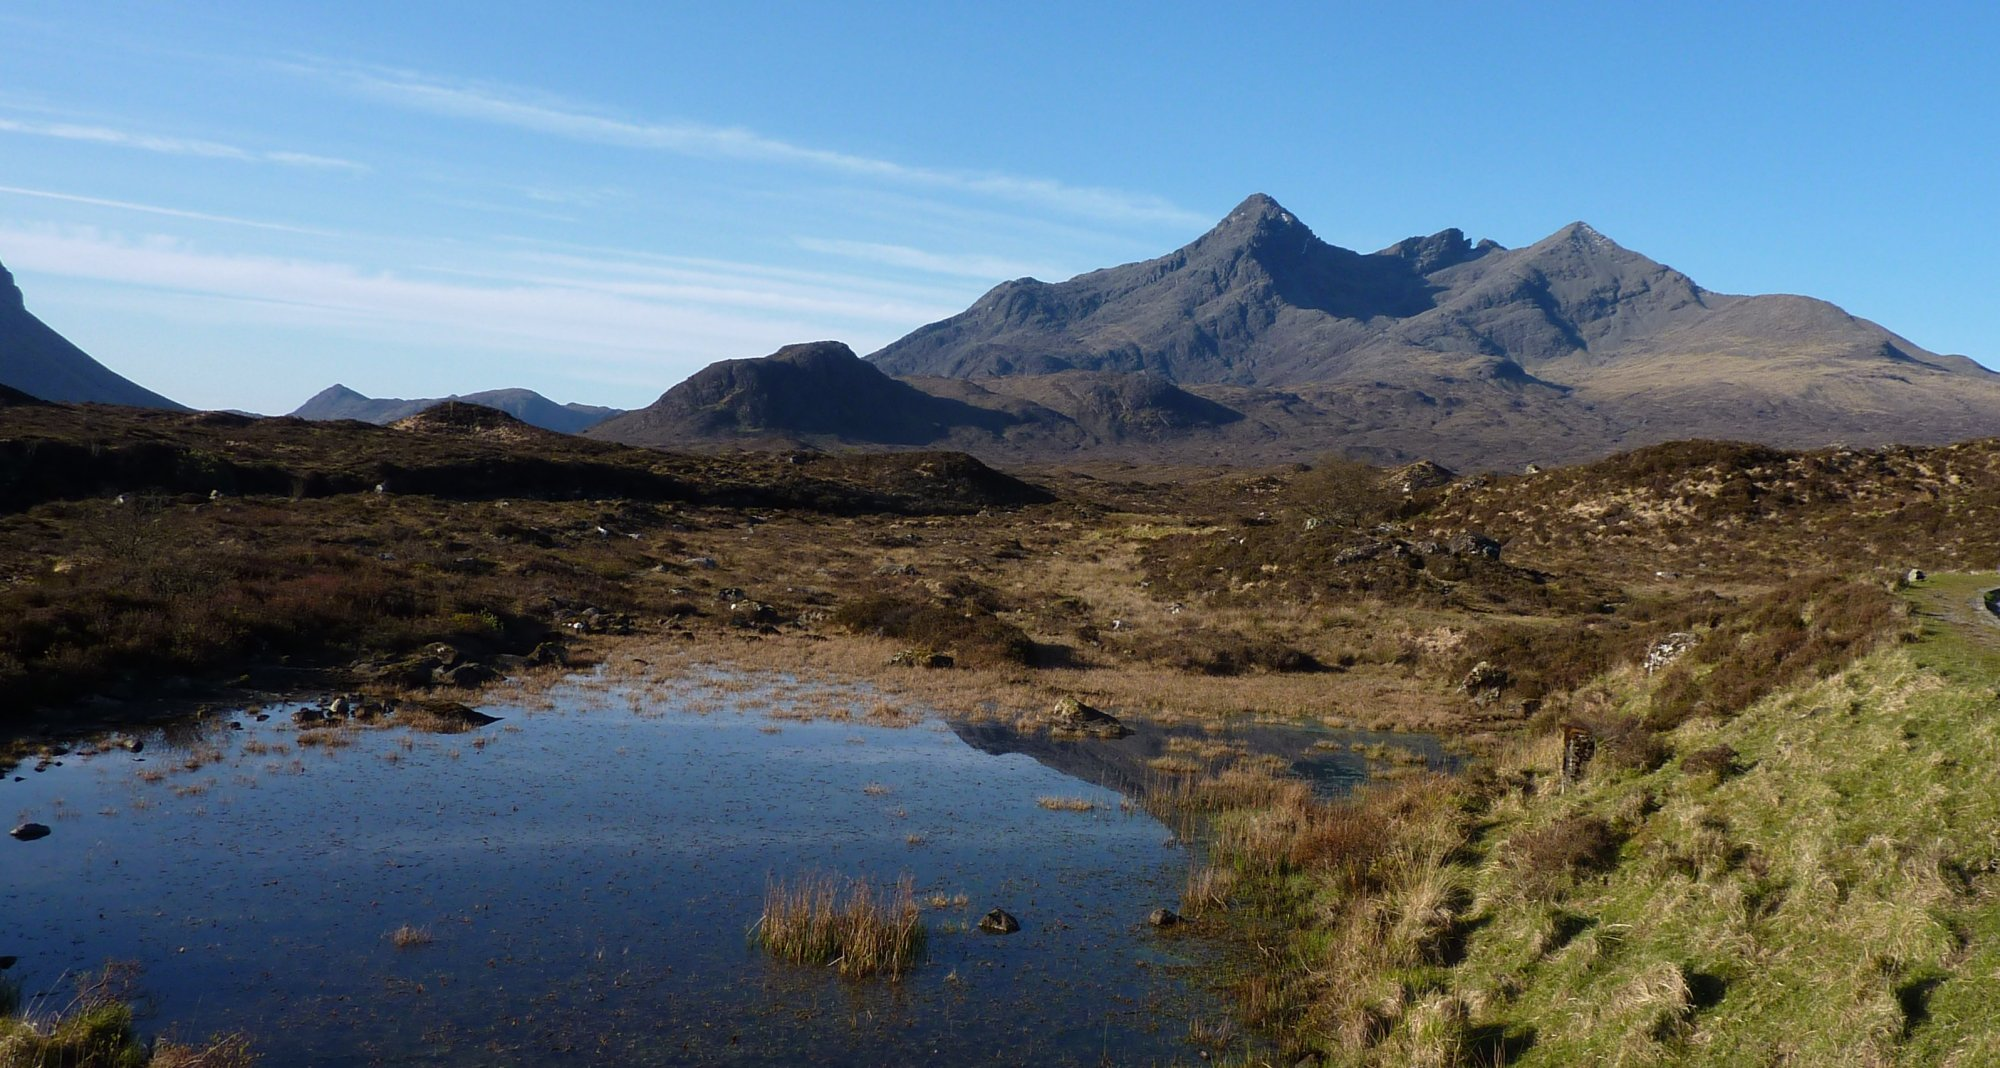 Northern edge of the Cuillin horseshoe - Sgurr Nan Gillean, seen from the start of the path